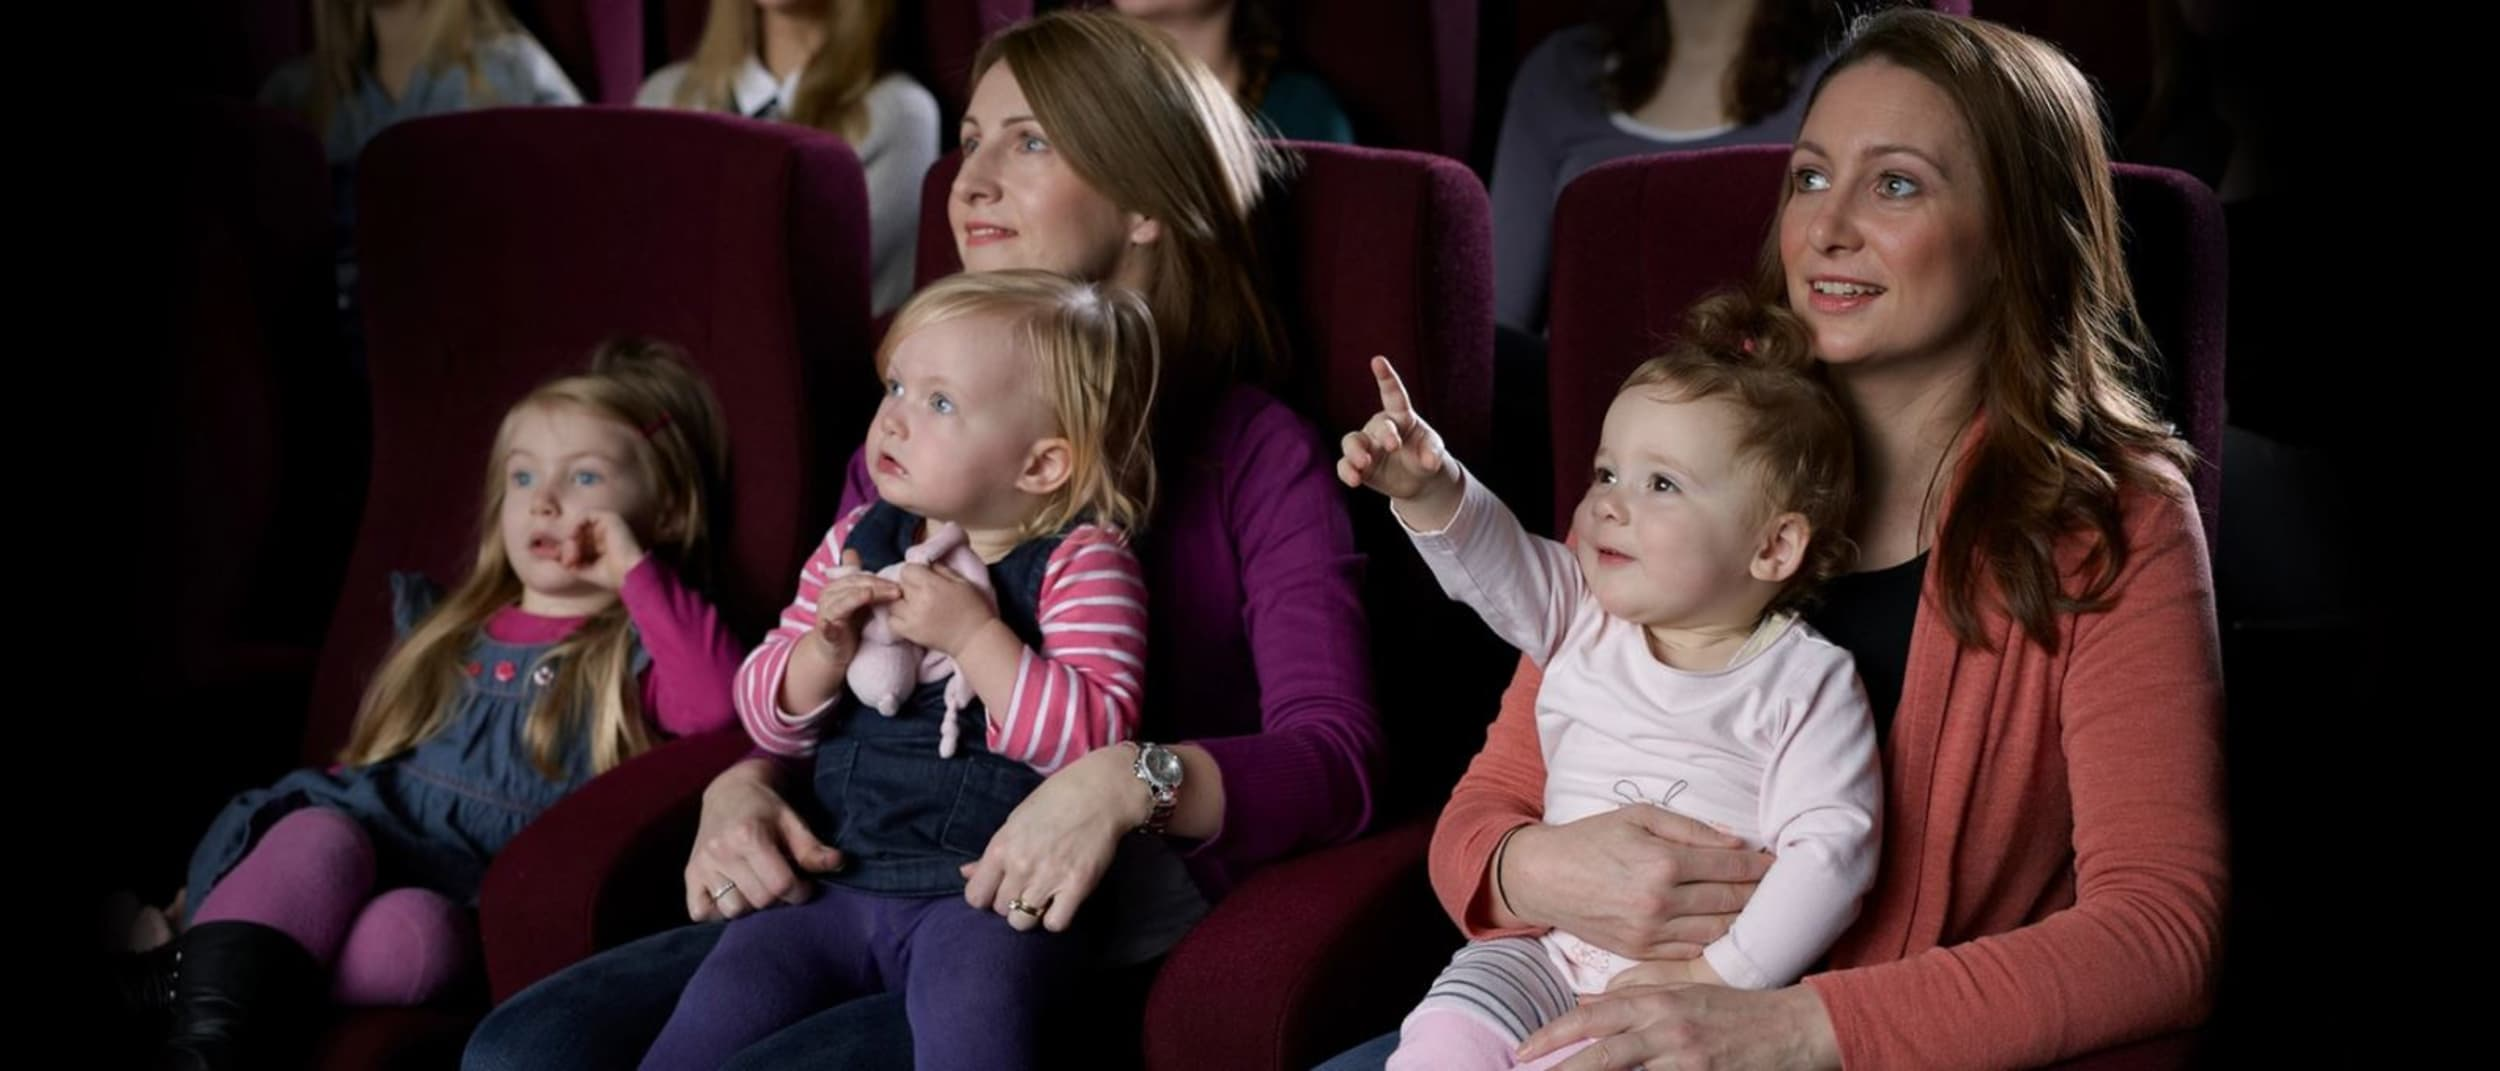 Event Cinemas: Bring your baby sessions